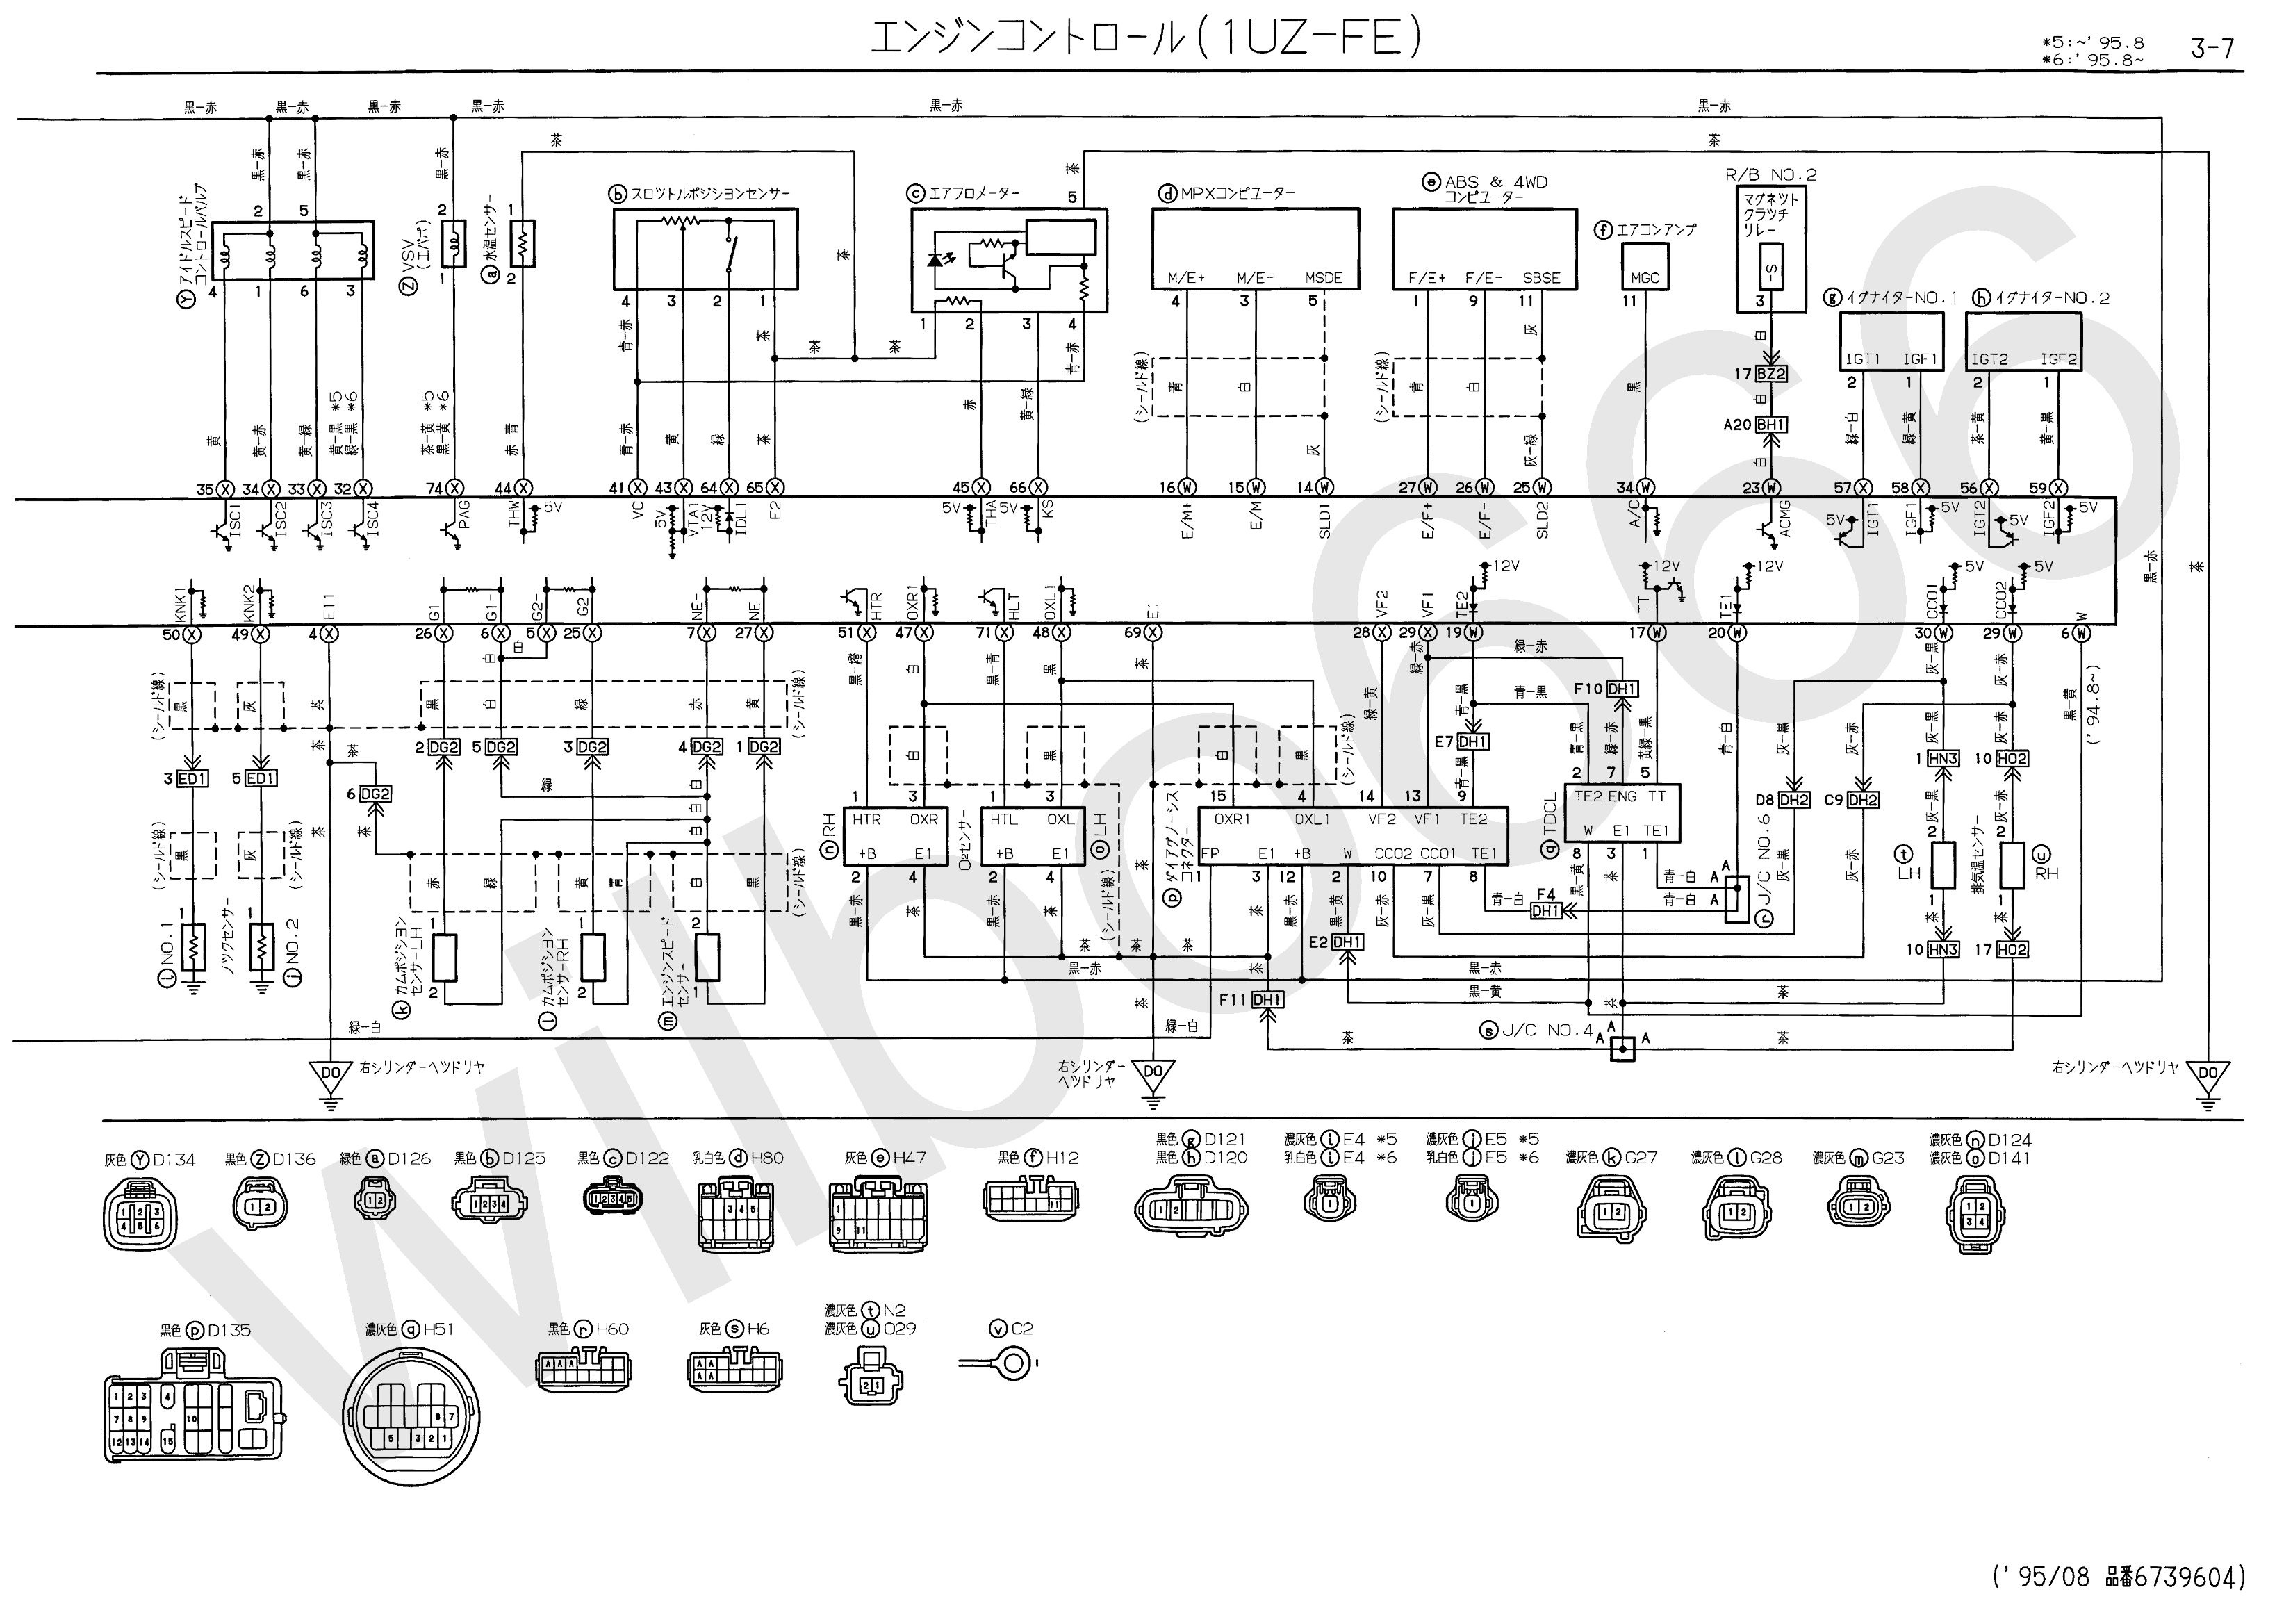 Megalert led panel wiring diagram wiring diagram fancy r33 wiring diagram illustration electrical diagram ideas megalert led panel wiring diagram cheapraybanclubmaster Images